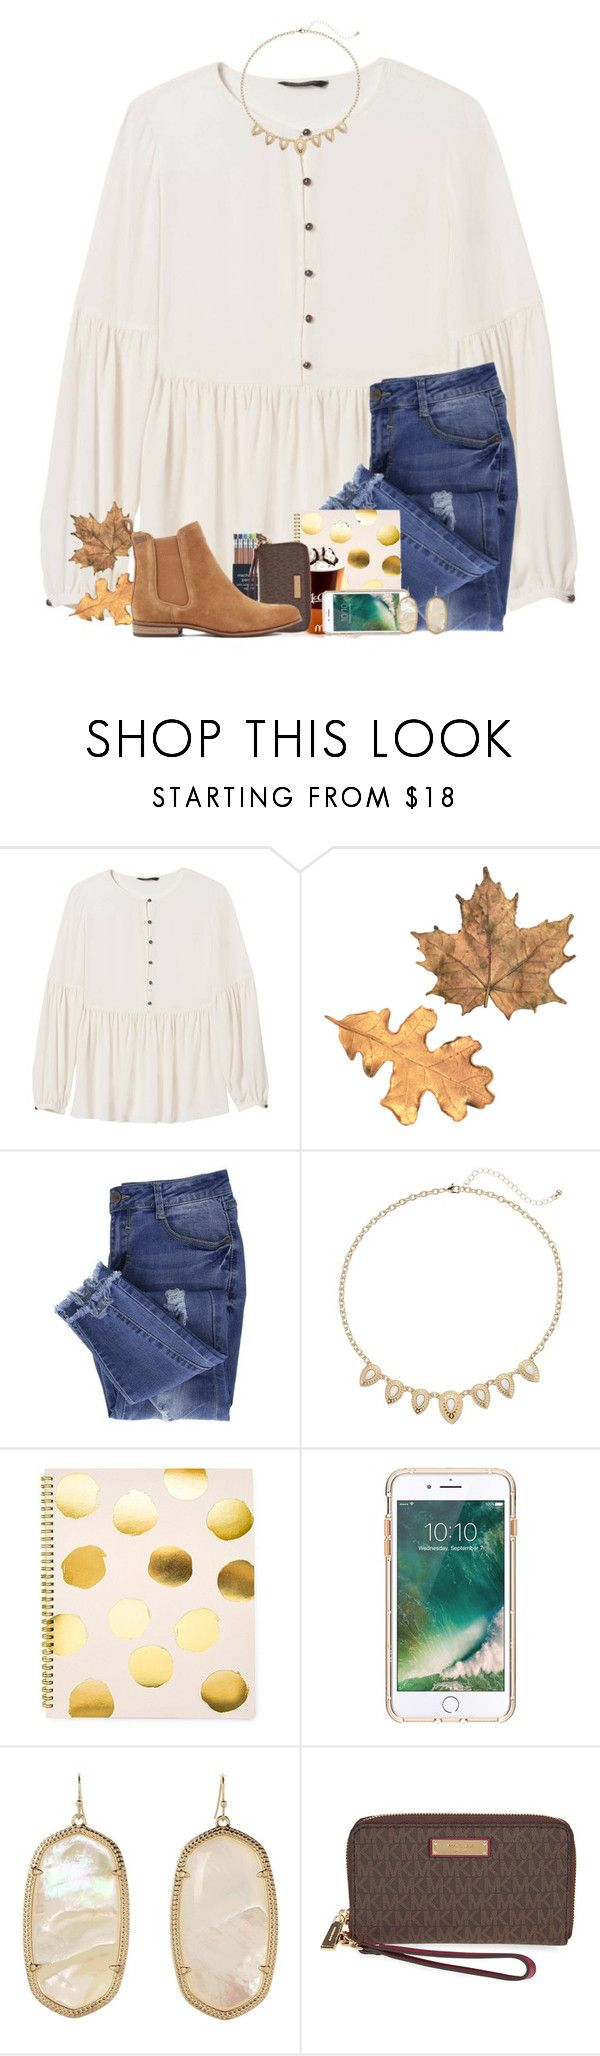 """its still so warm in VA "" by jeh-shev ❤ liked on Polyvore featuring Banana Republic, Essie, Mudd, Sugar Paper, Griffin, Kendra Scott, Michael Kors and Superdry"